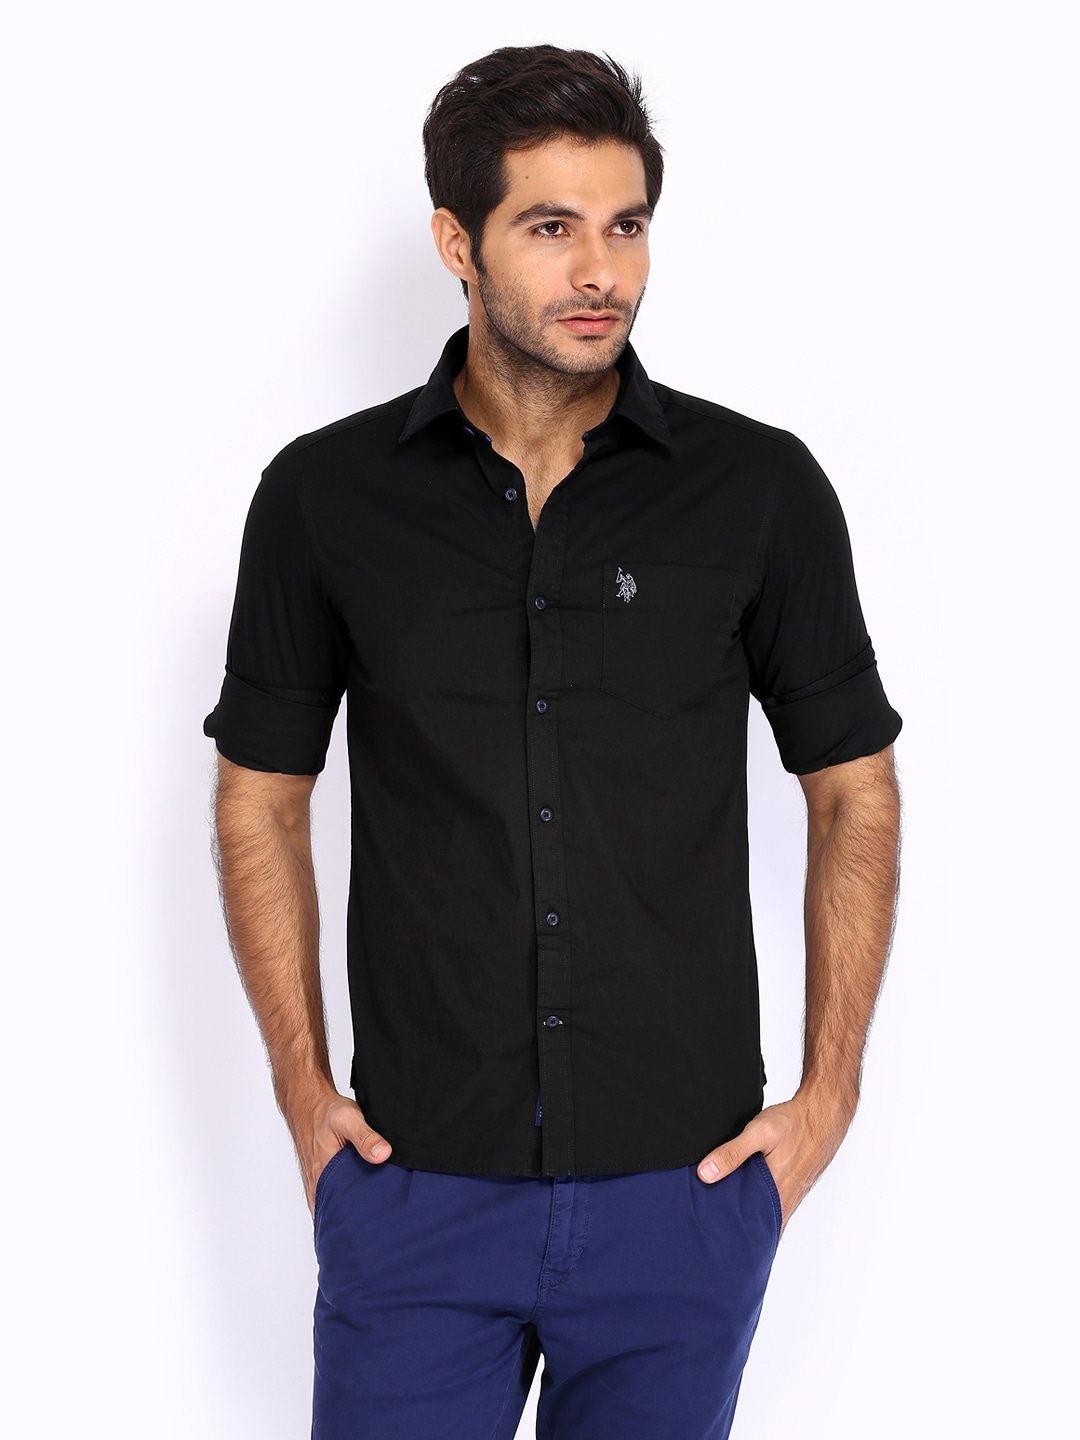 8c598ea74b4ae Men Reebok Casual Shirts Polo Tshirts - Buy Men Reebok Casual Shirts Polo  Tshirts online in India